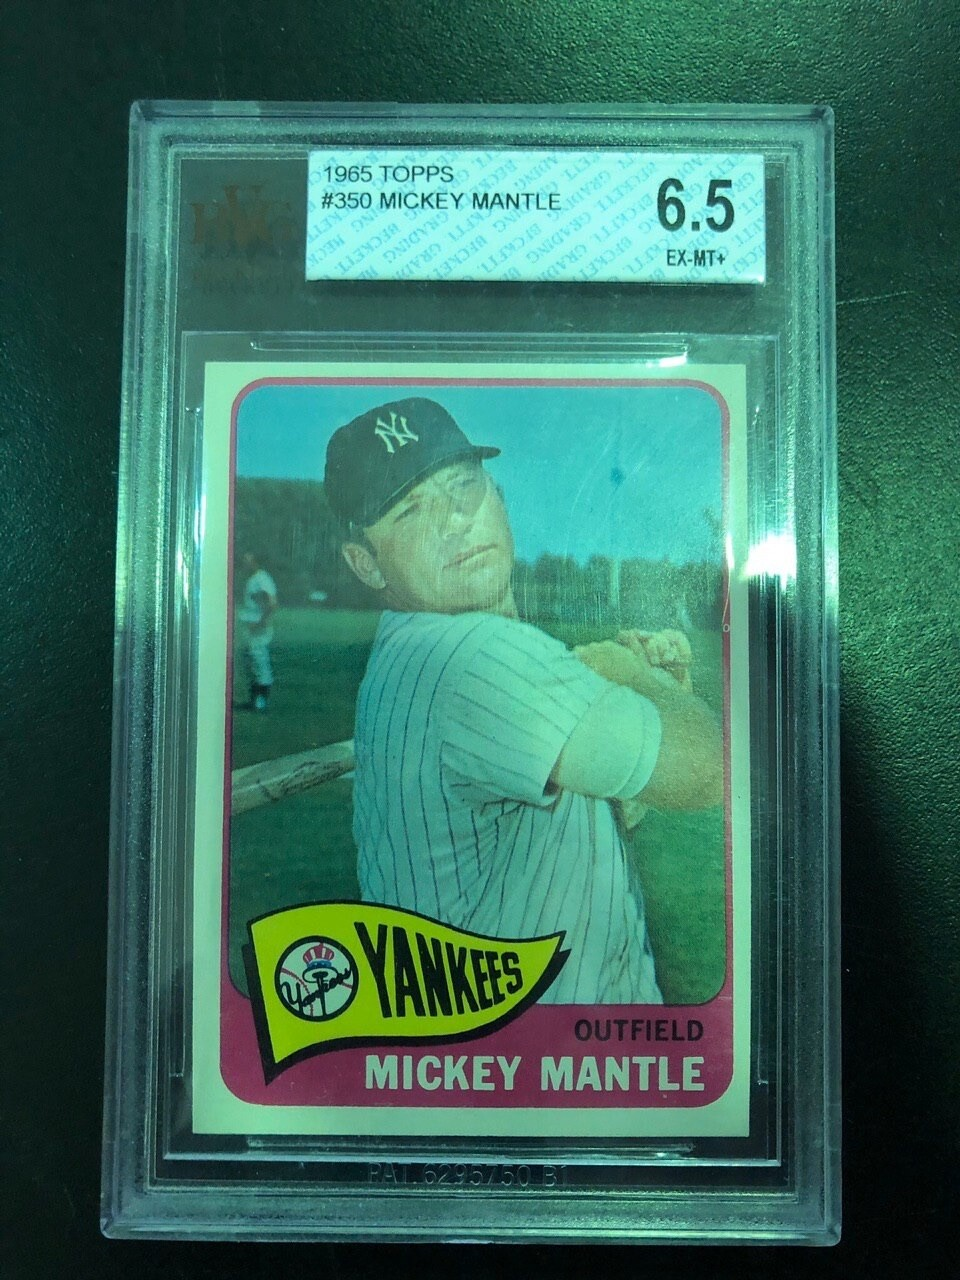 1965 Topps #350 Mickey Mantle Beckett graded 6.5, $650